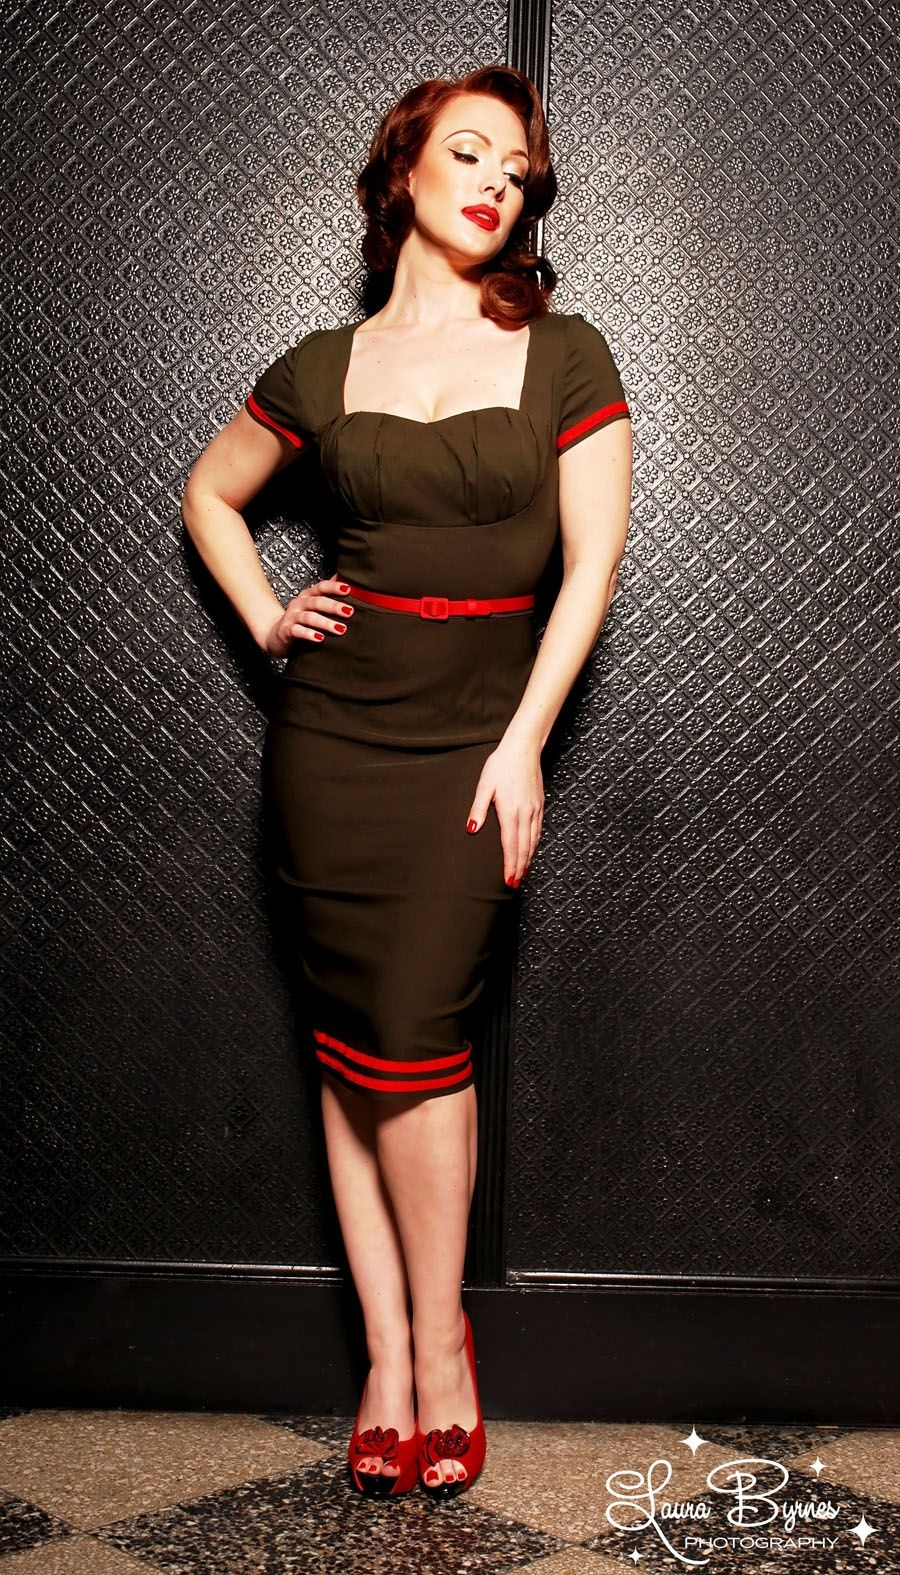 Pin Up Girl Clothing Com Military Pinup Dress In Olive Green With Red Details From Pinup